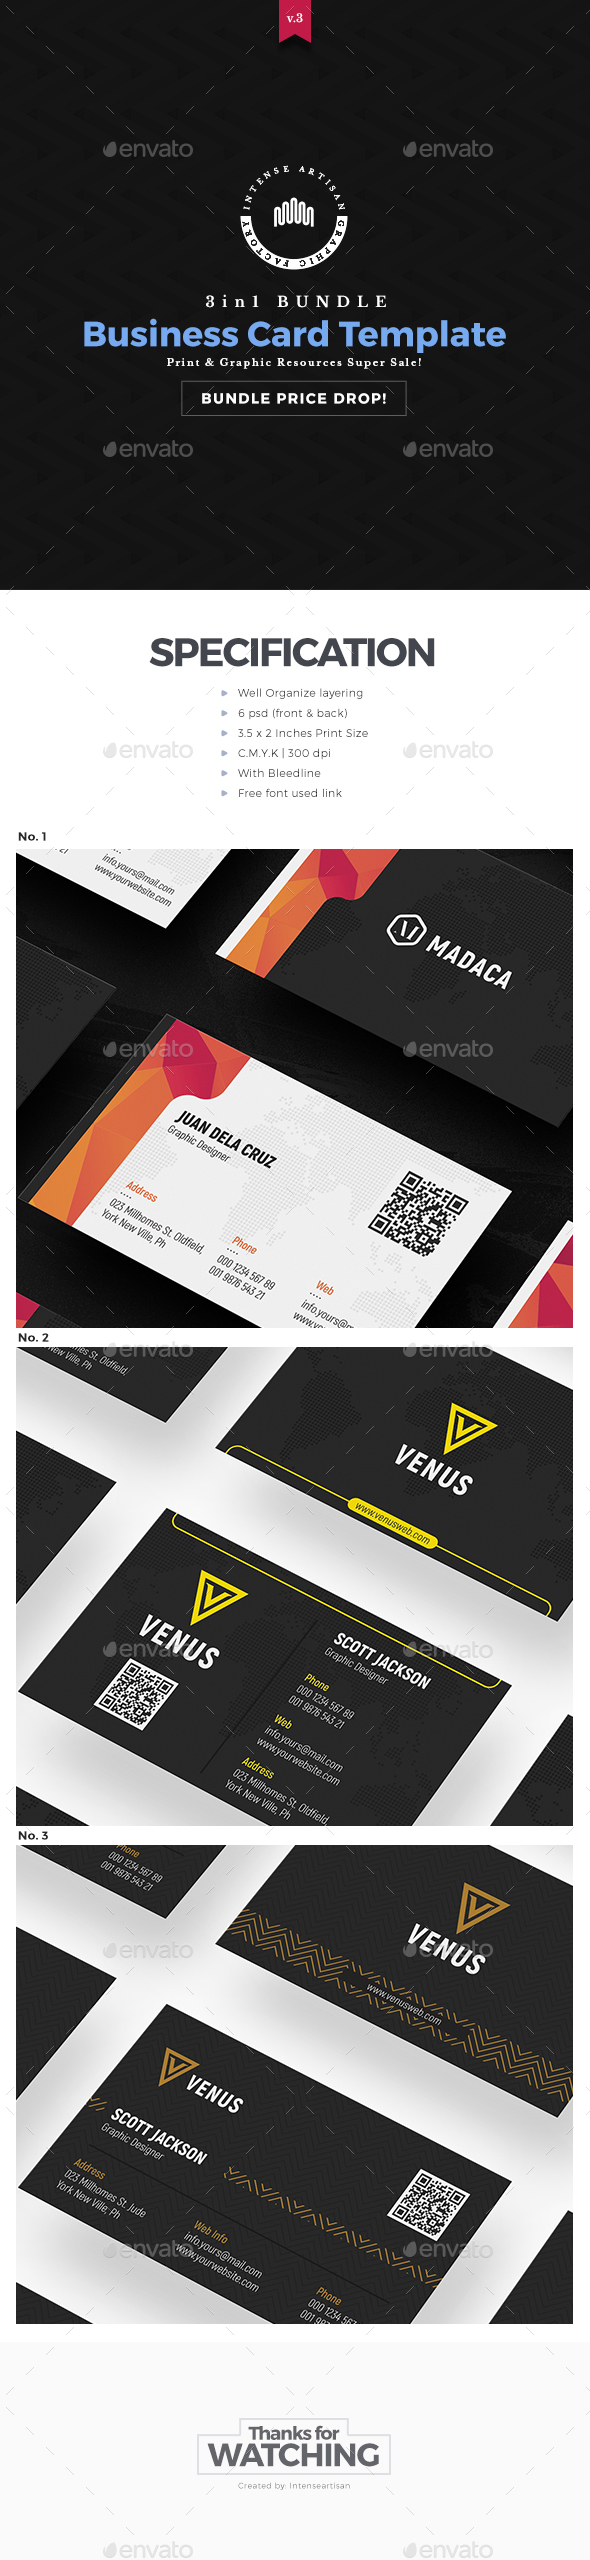 Business Card - 3in1 Bundle - Creative Business Cards